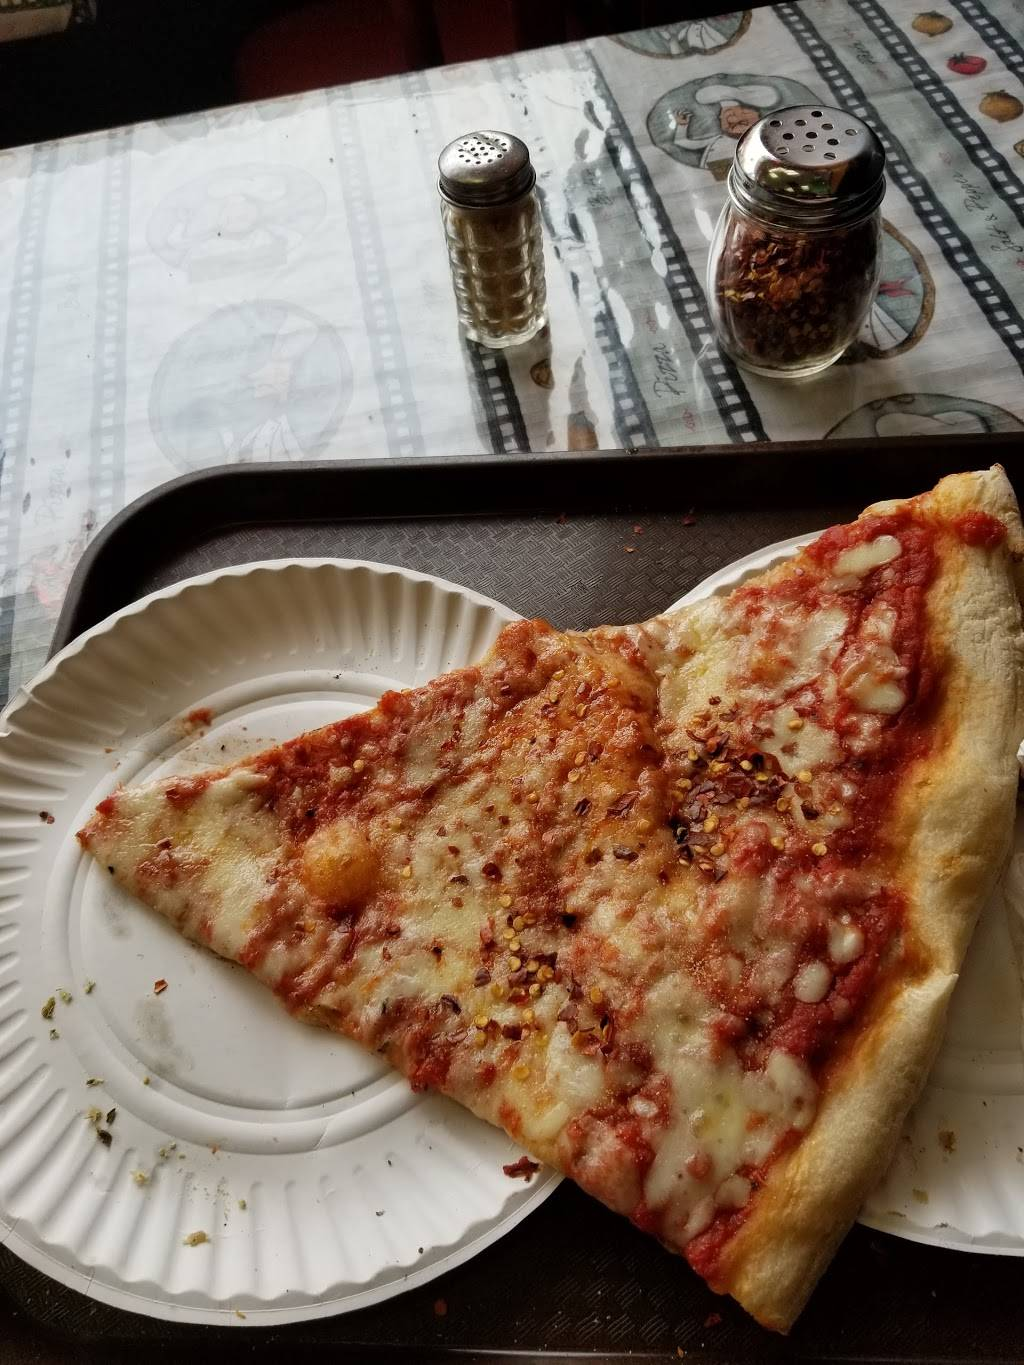 Bedford Pizza | restaurant | 380 Bedford Park Blvd, Bronx, NY 10458, USA | 9178010770 OR +1 917-801-0770